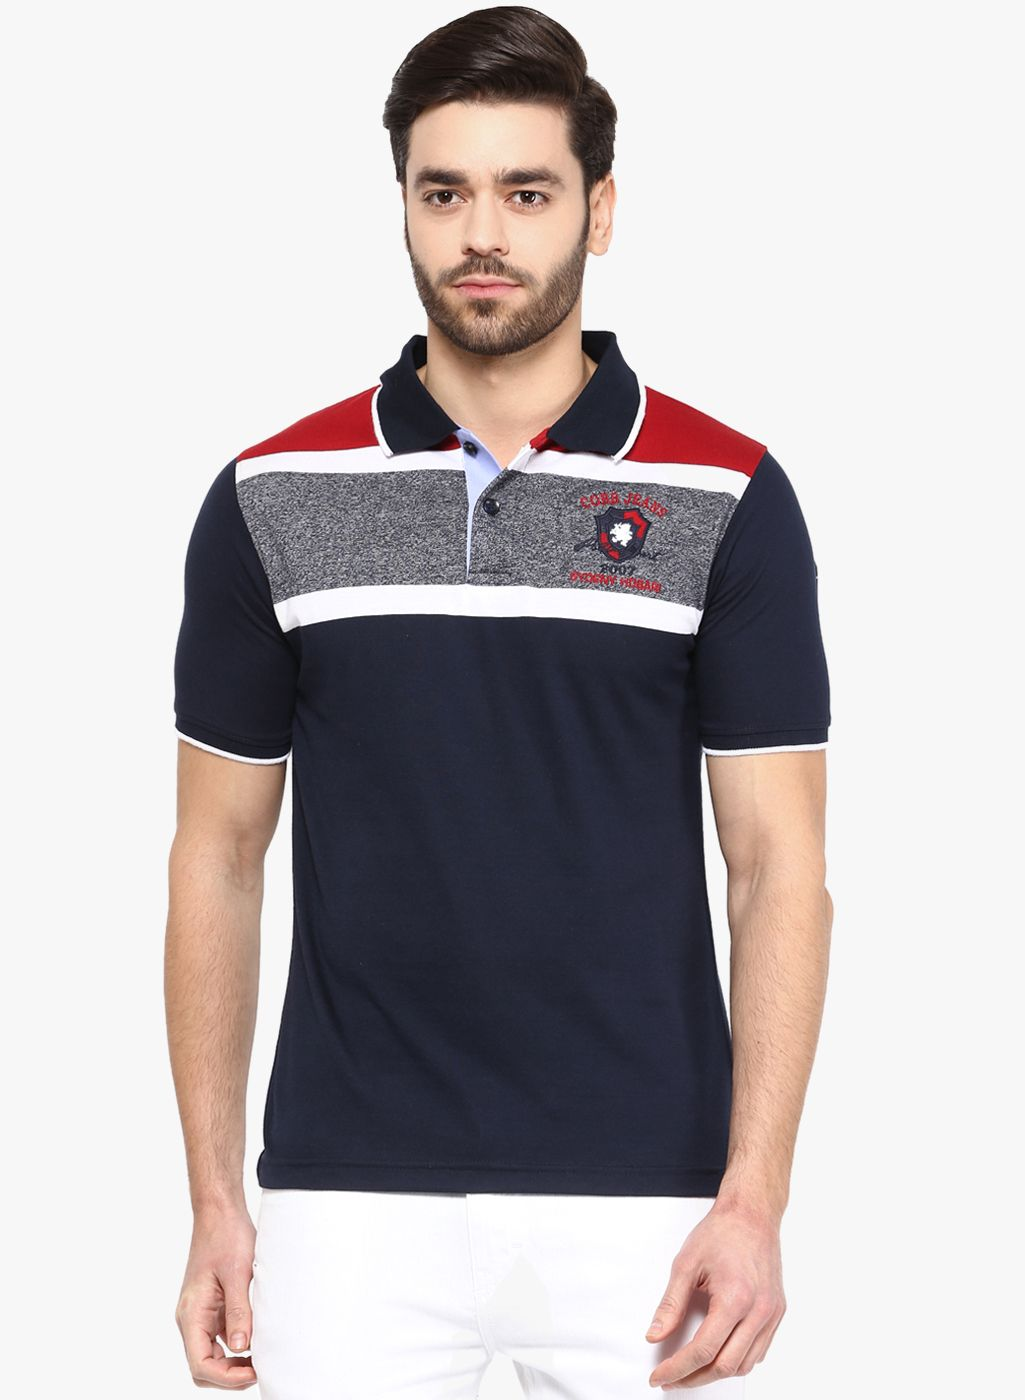 0212045b Buy Cobb Navy Blue Solid Polo T-Shirt for Men Online India, Best Prices,  Reviews | CO399MA37ZZUINDFAS